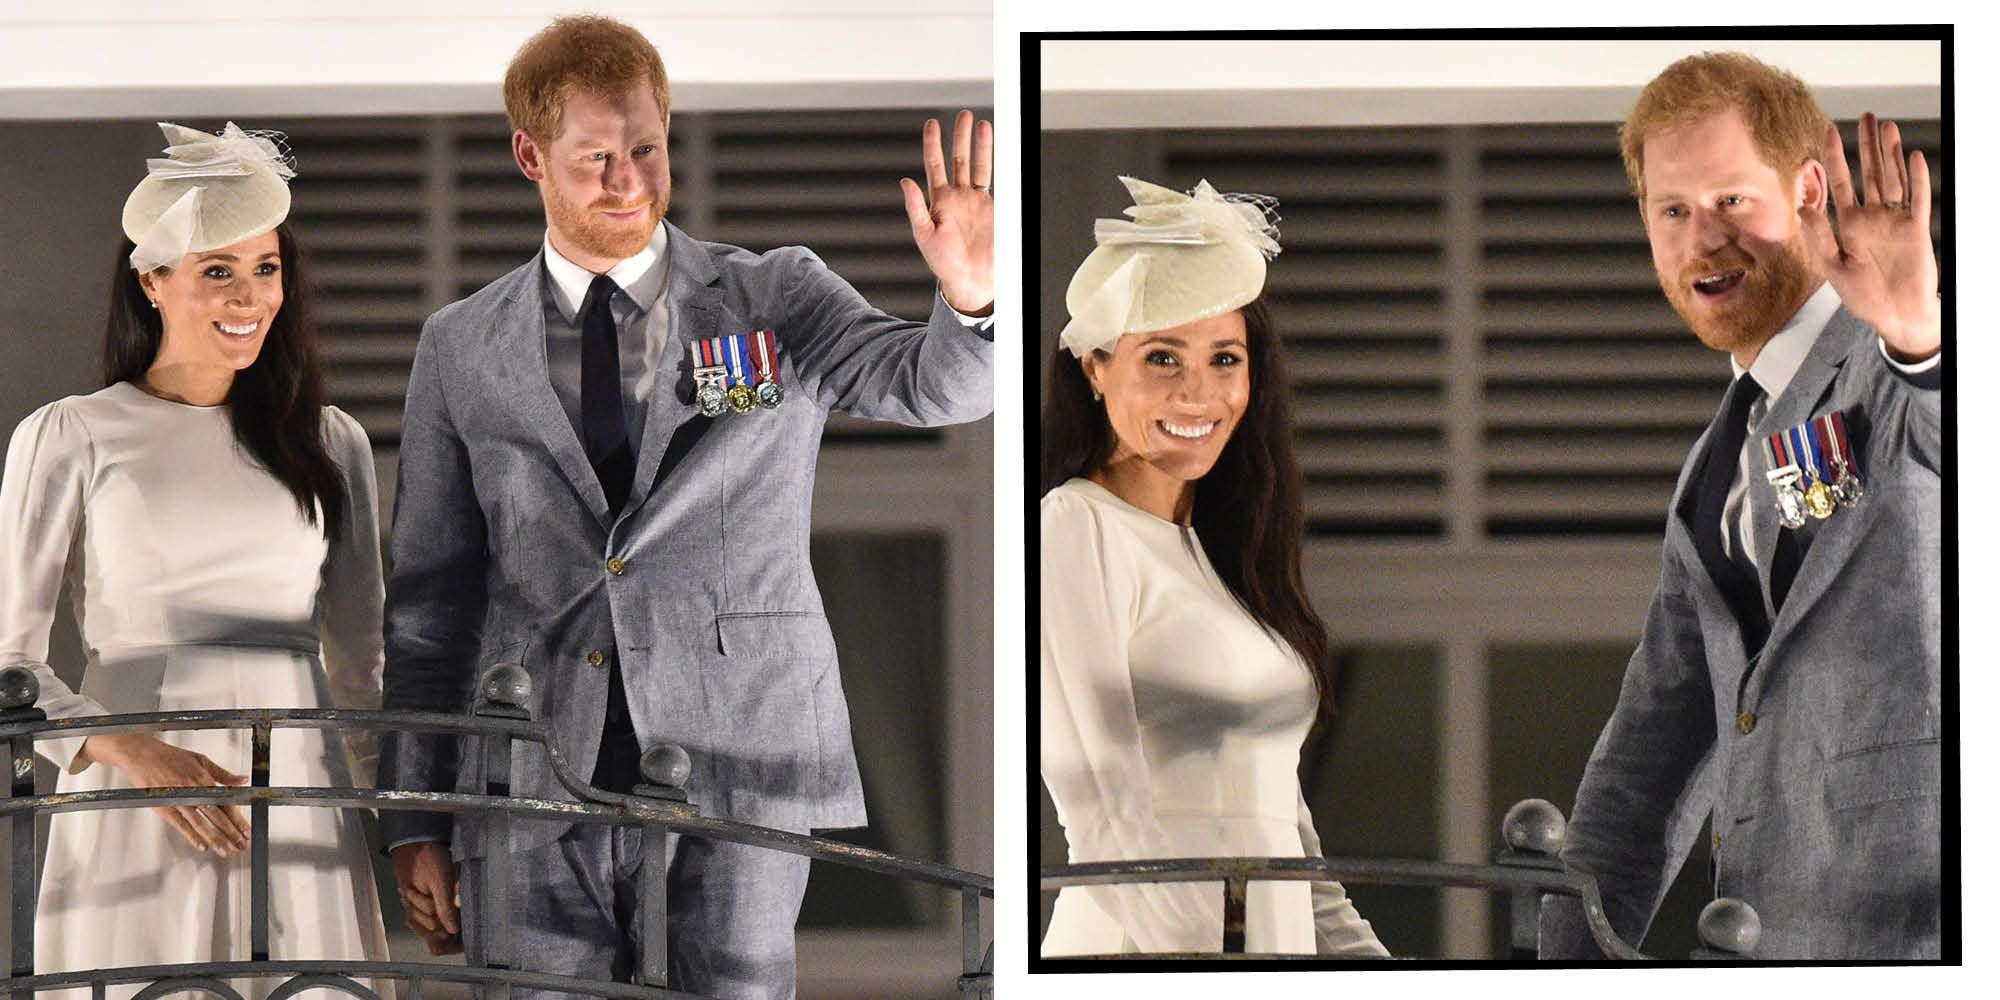 Meghan Markle and Prince Harry on royal tour of Fiji